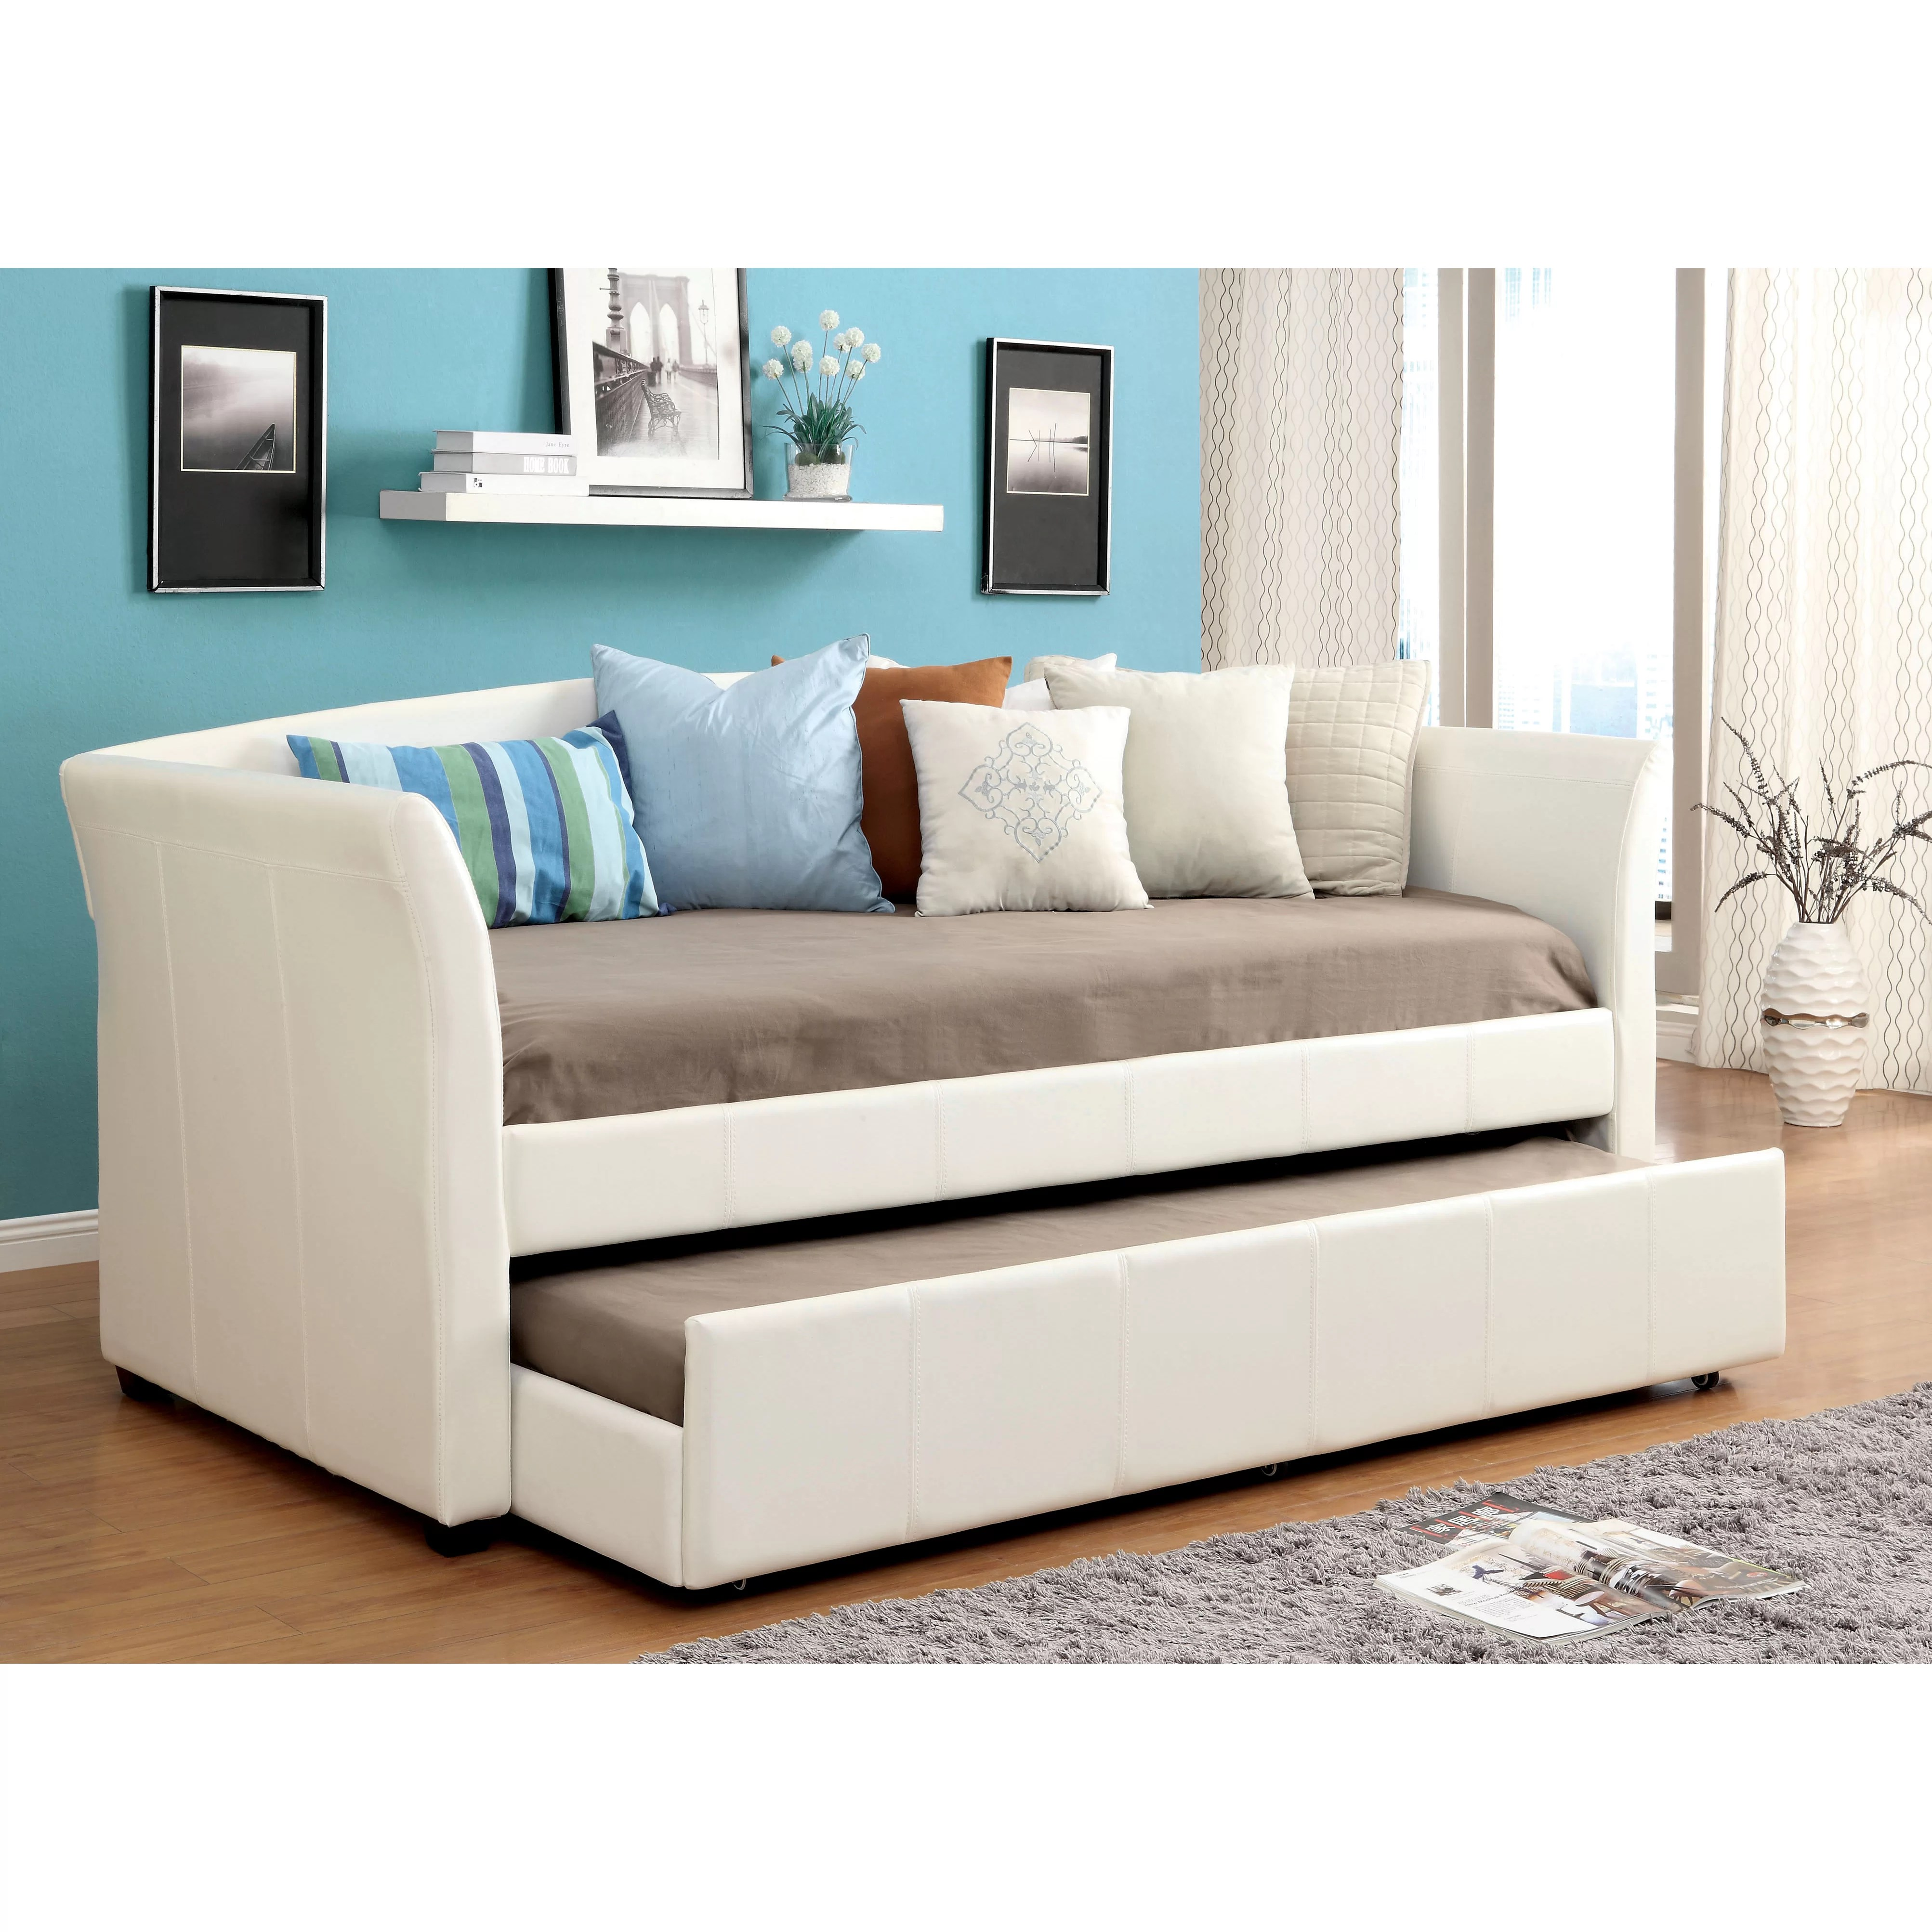 Day Bed Trundle Bed Hokku Designs Roma Daybed With Trundle And Reviews Wayfair